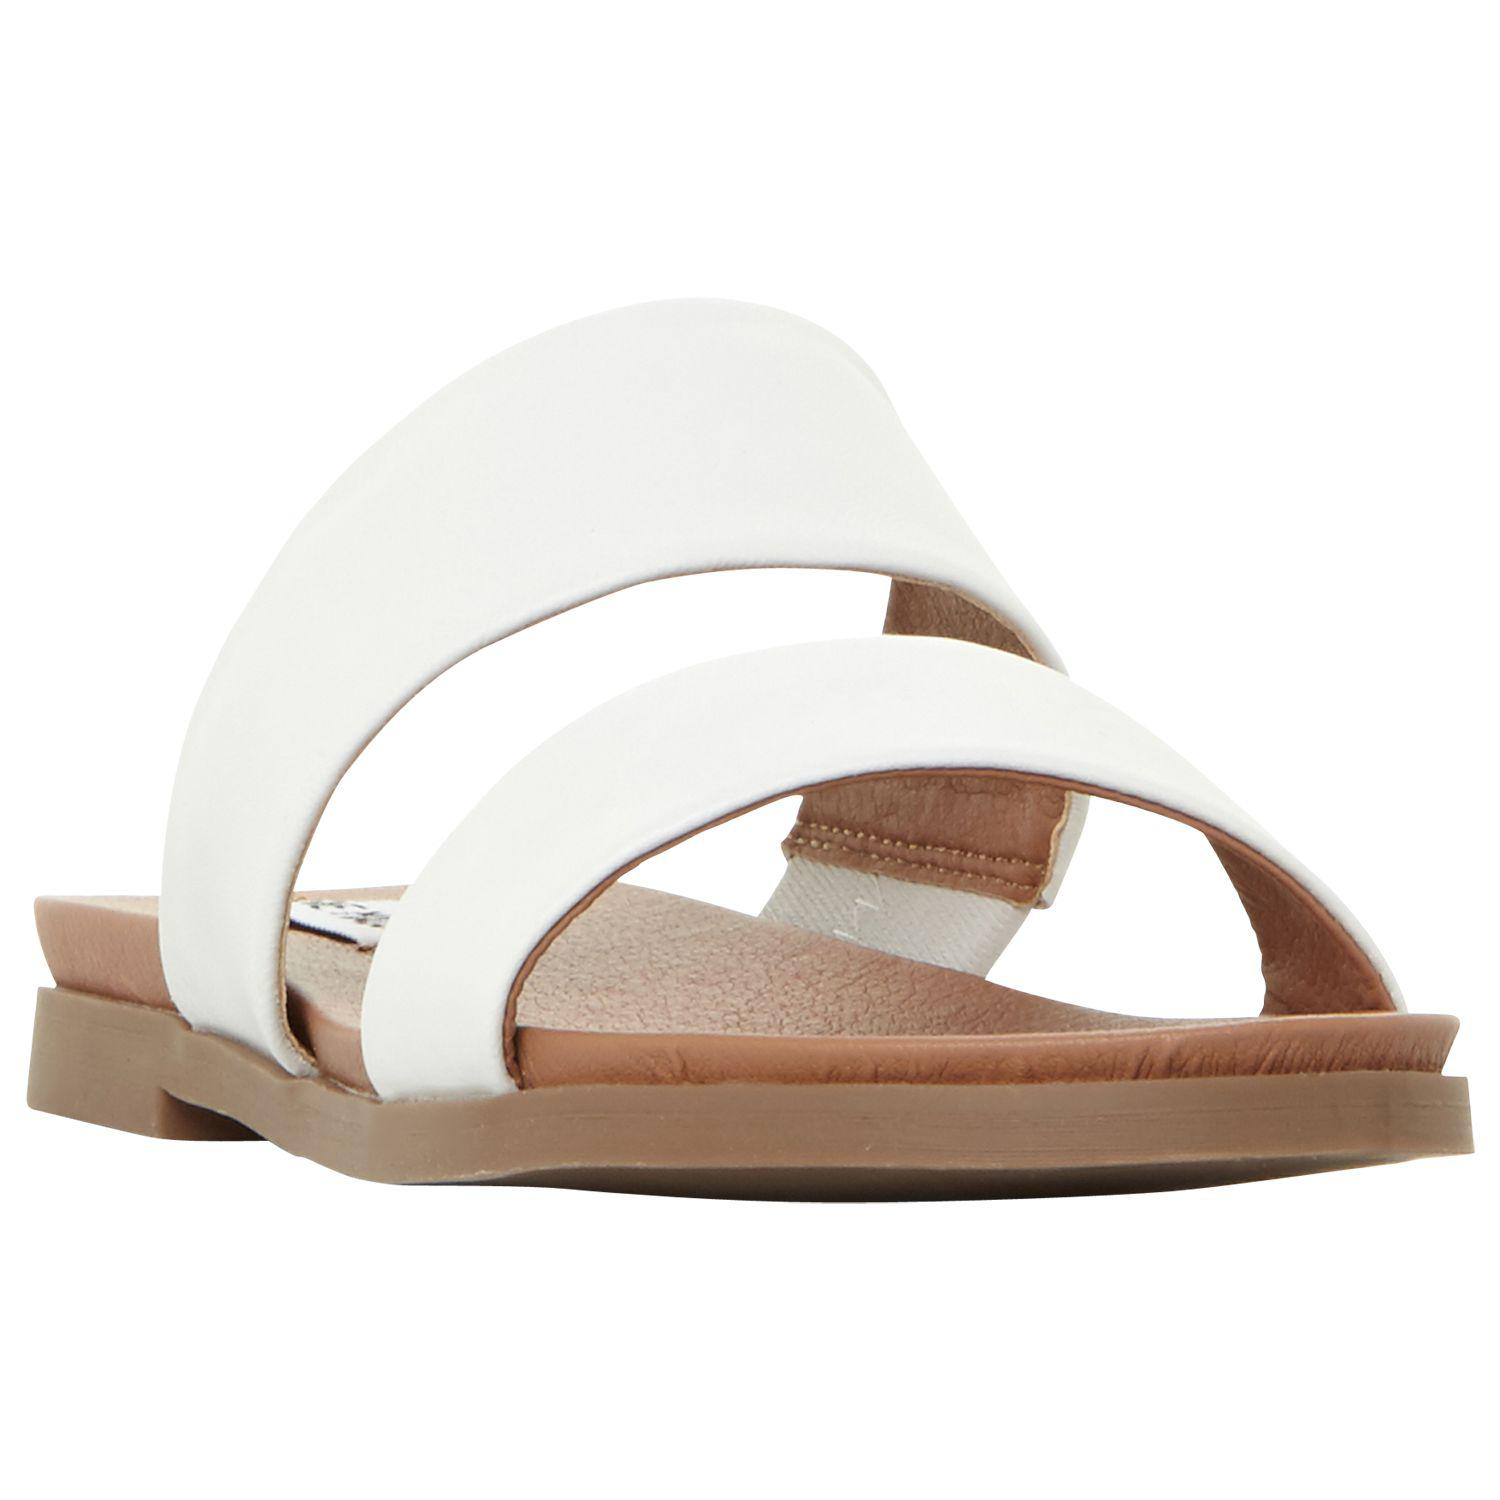 424758d80b1 Steve Madden Judy Two Band Leather Sliders in White - Lyst